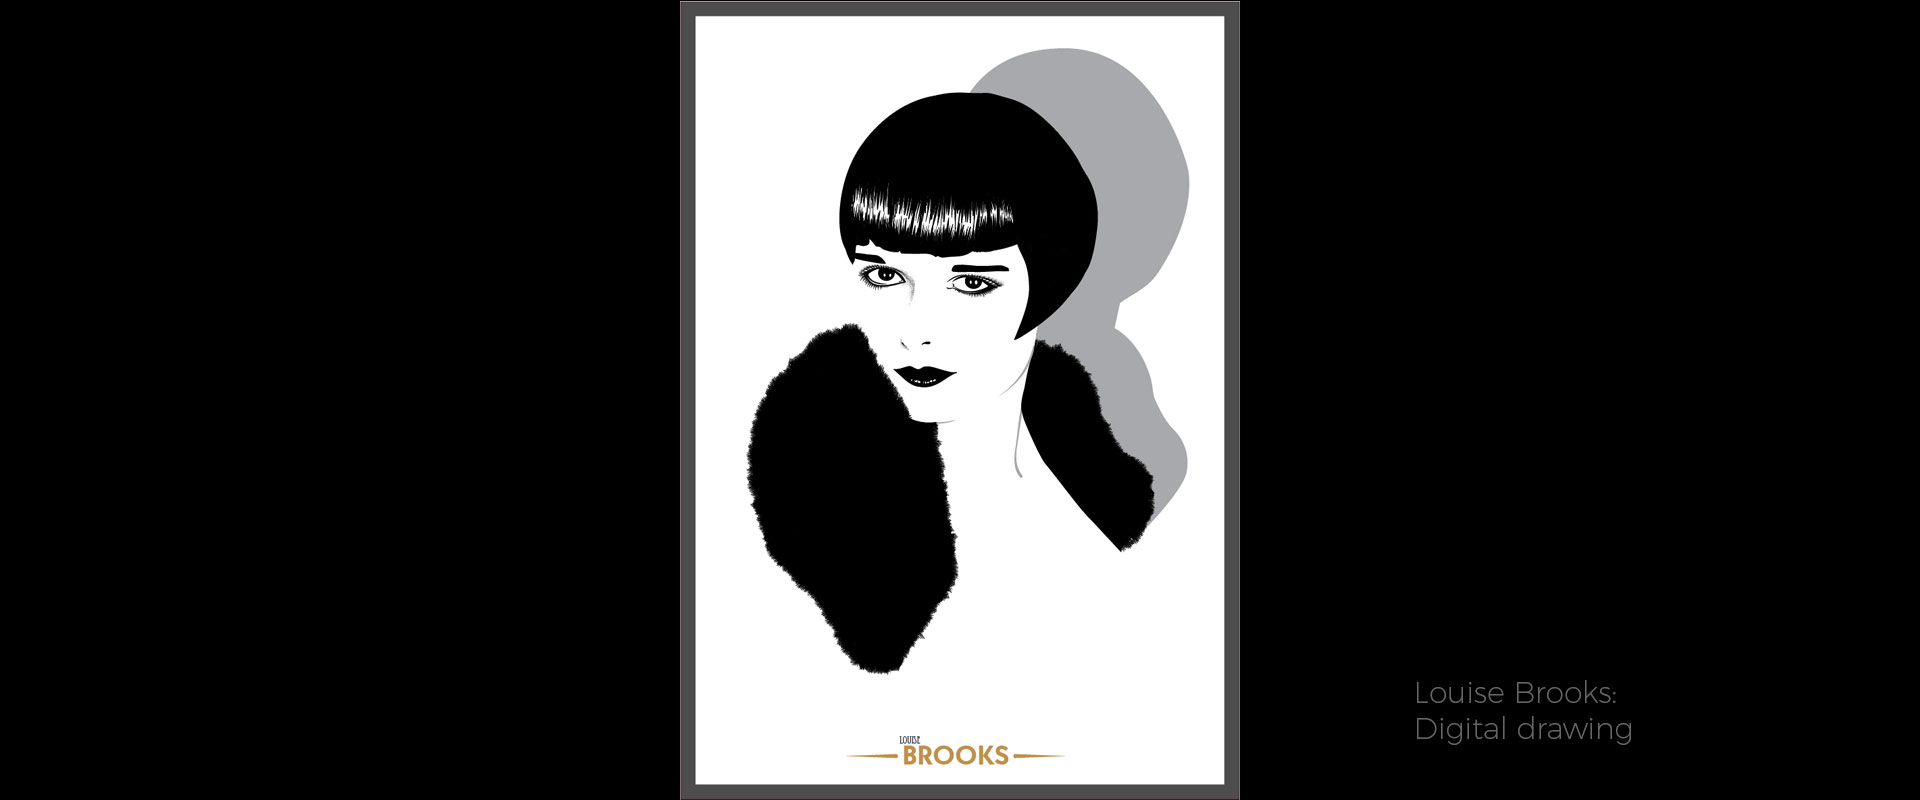 Louise Brooks, illustration by David Hamley